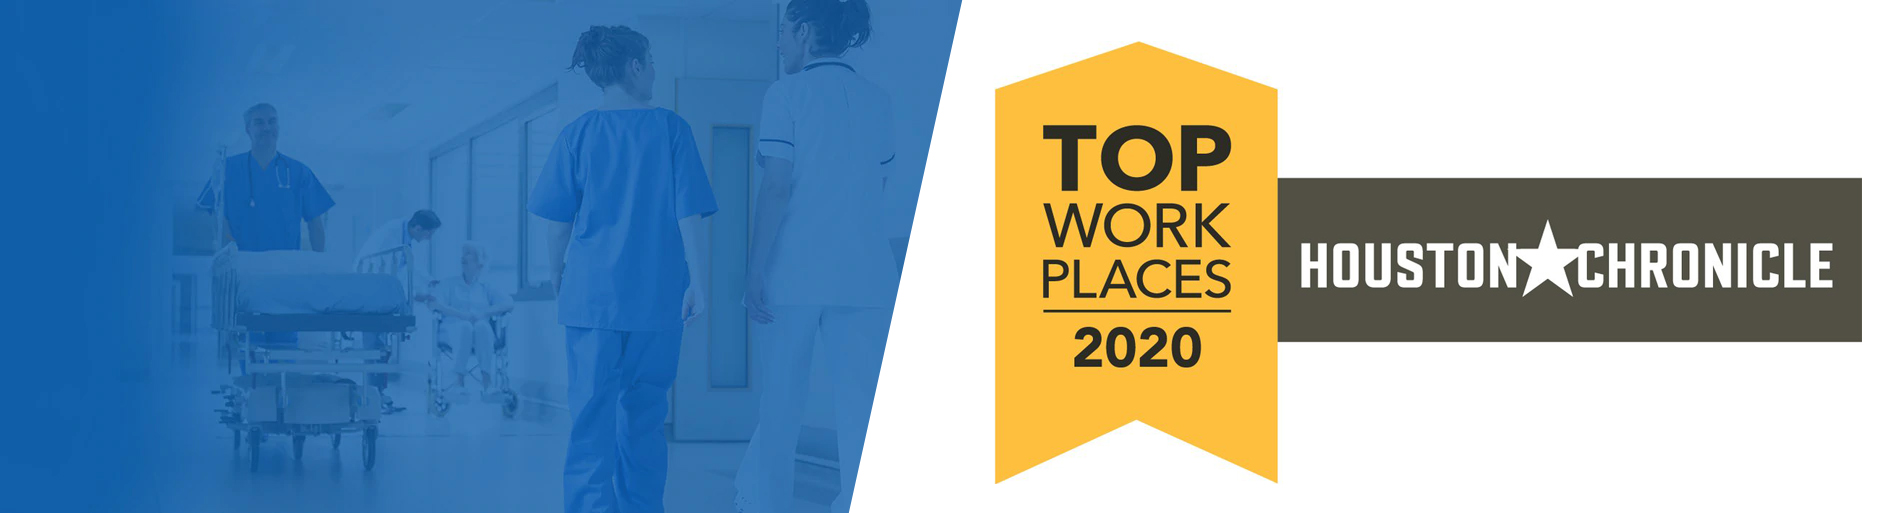 Houston Chronicle Top Work Places